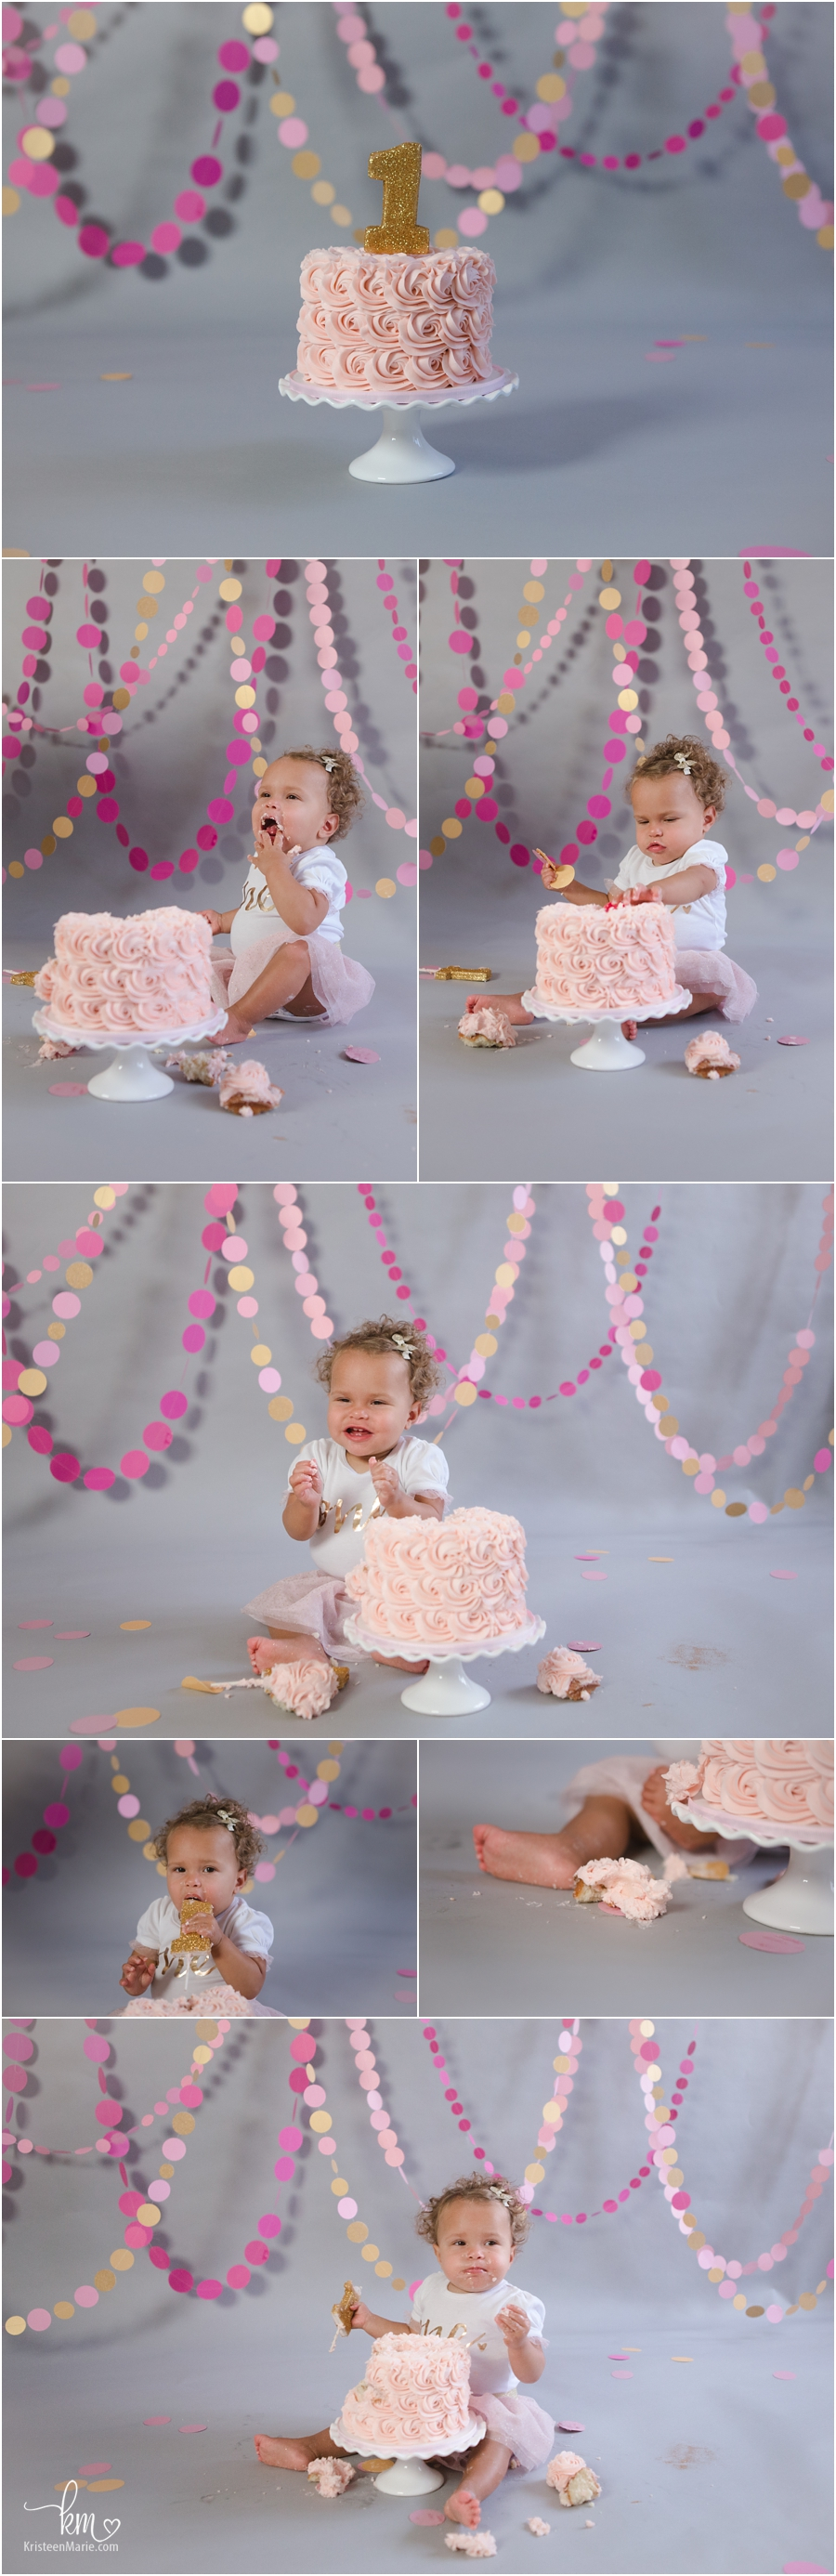 pink and gold cake smash photo shoot